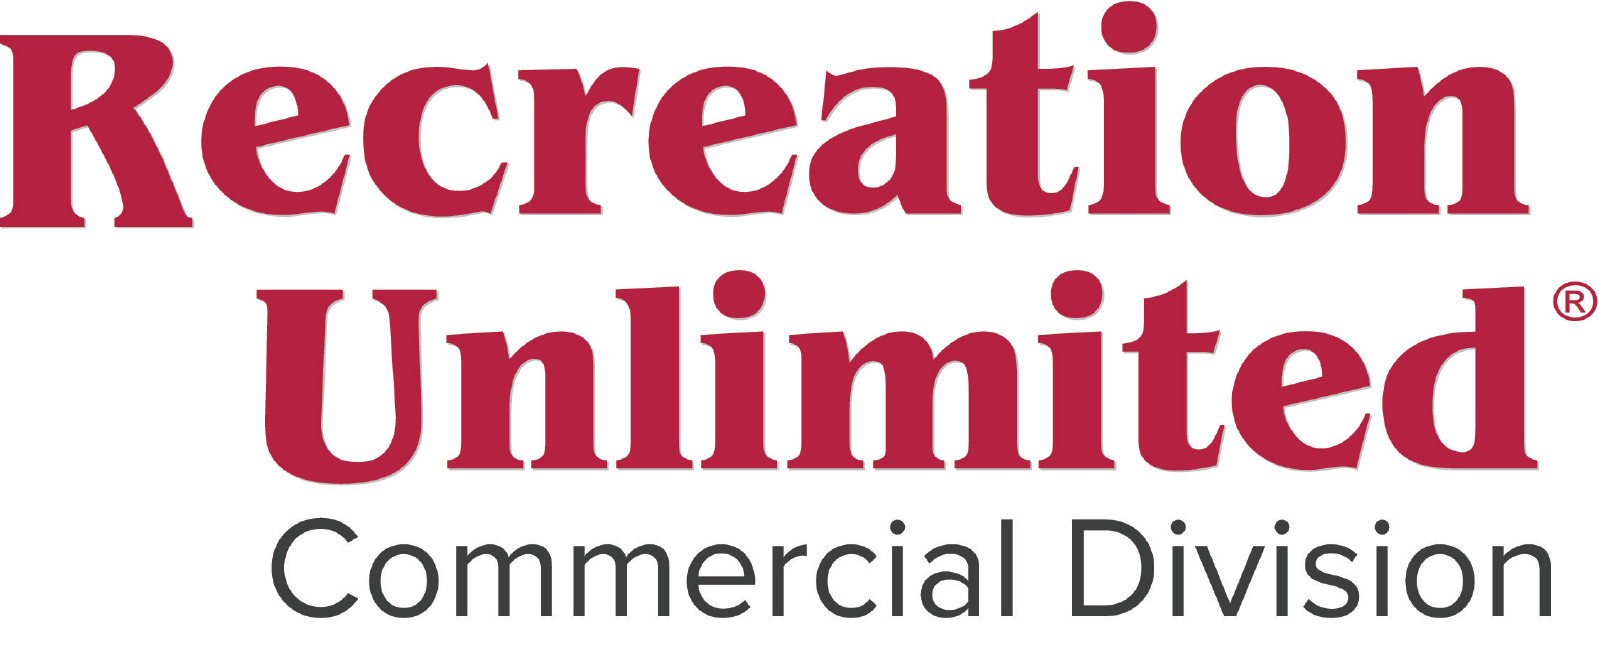 Corporate Member Spotlight: Recreation Unlimited